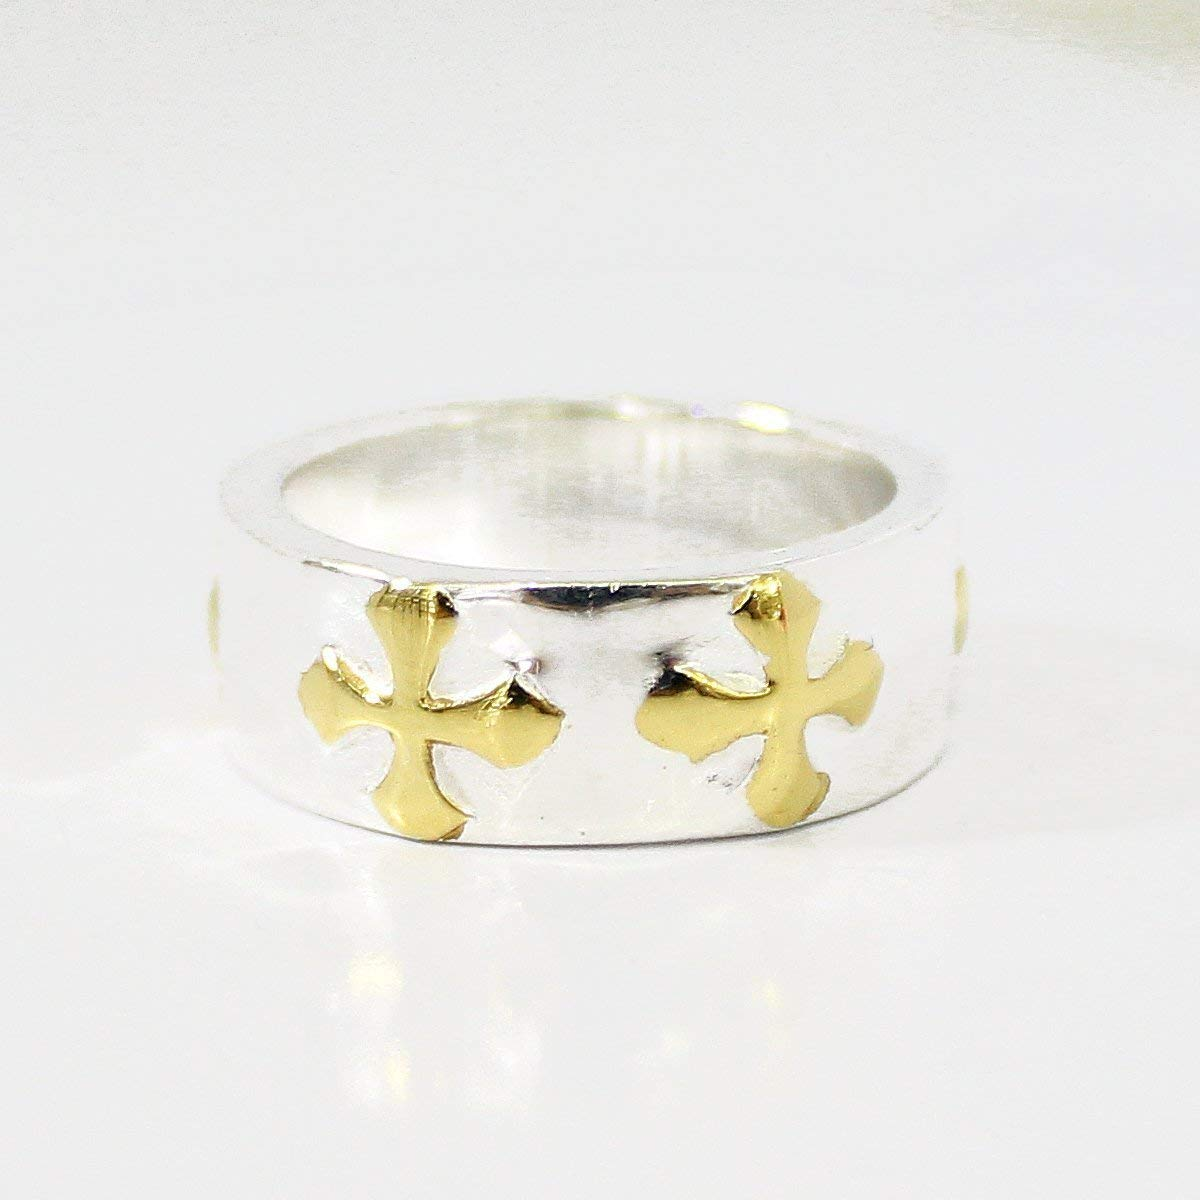 Bali Handmade 925 sterling silver ring size 6 with catholic cross gold plated, silver ring with gold plated, gold plated catholic cross ring, cross ring